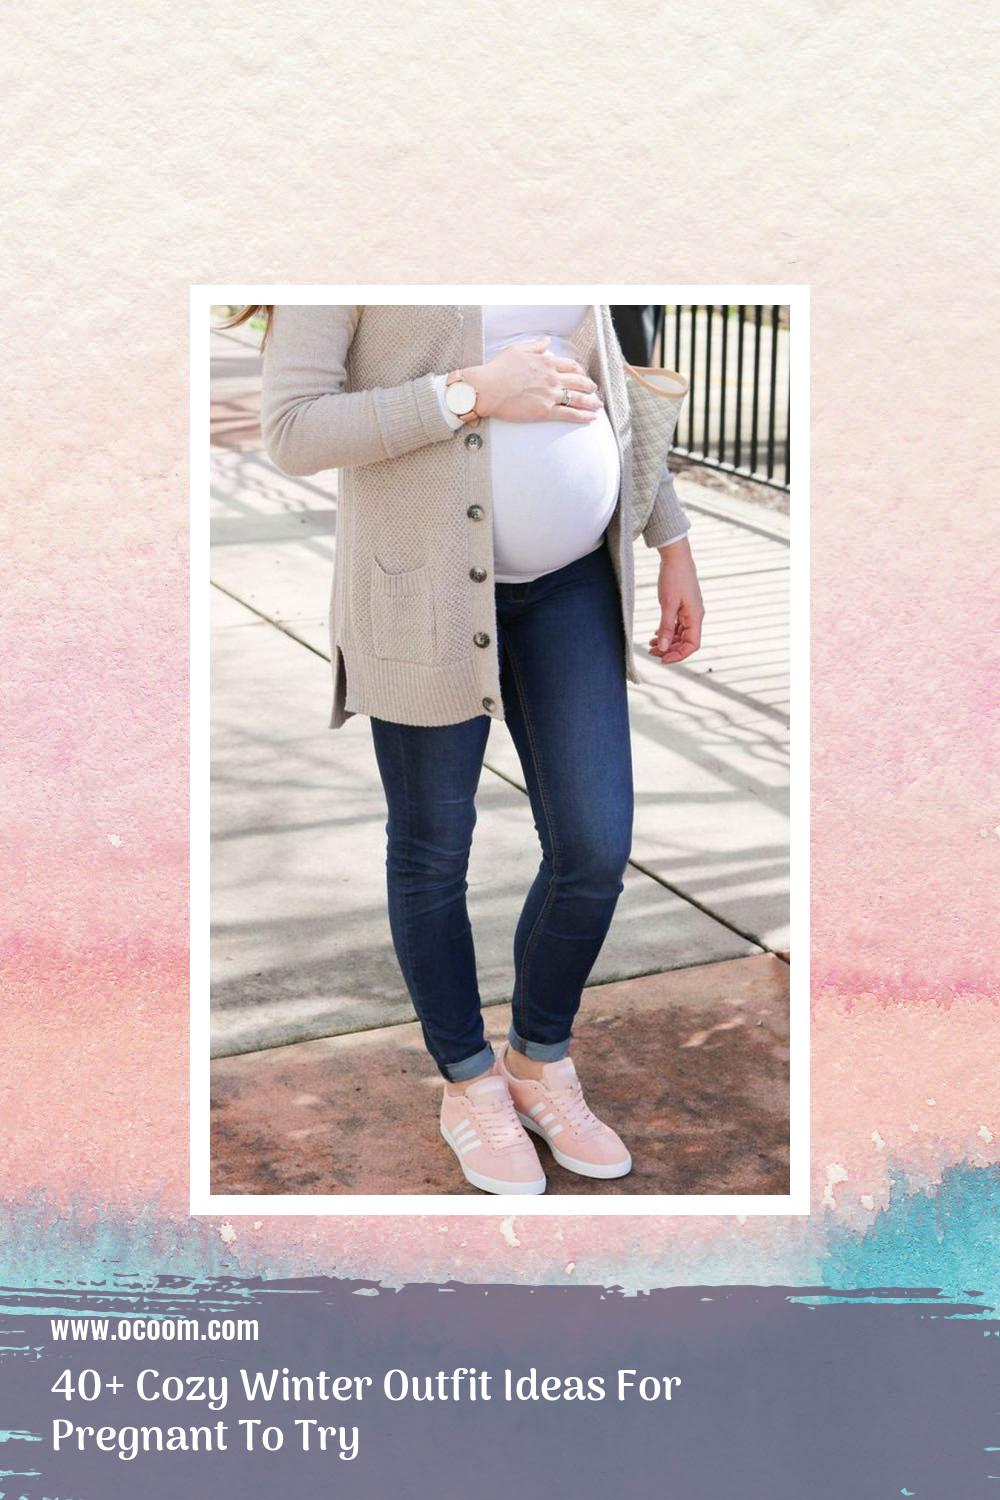 40+ Cozy Winter Outfit Ideas For Pregnant To Try 16